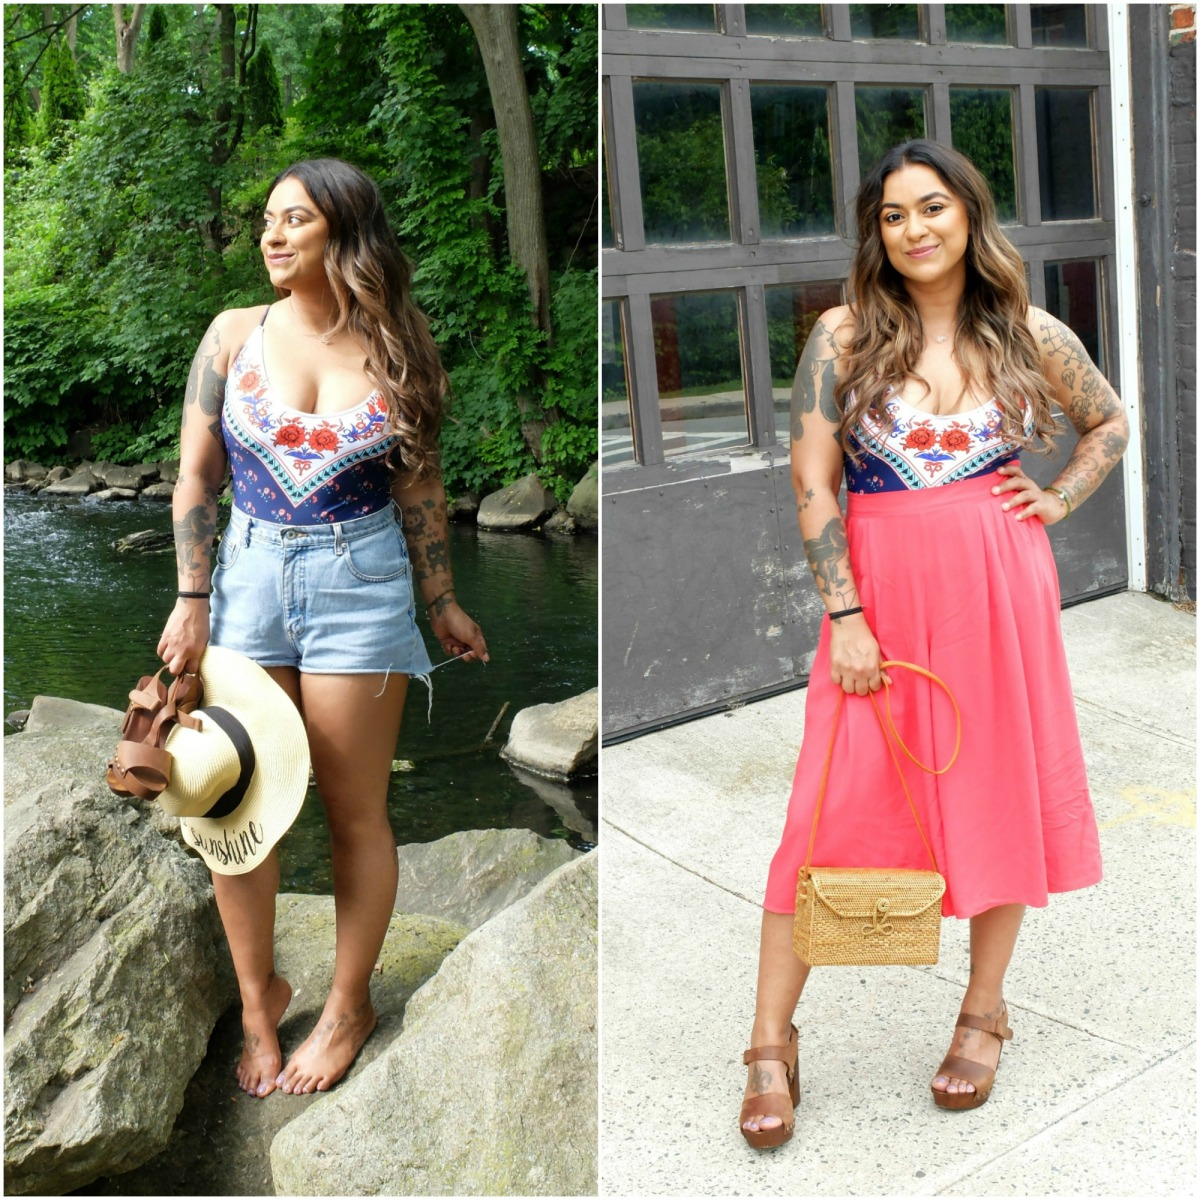 Bathing Suit: From Beach to Brunch w/@thefabjunkie